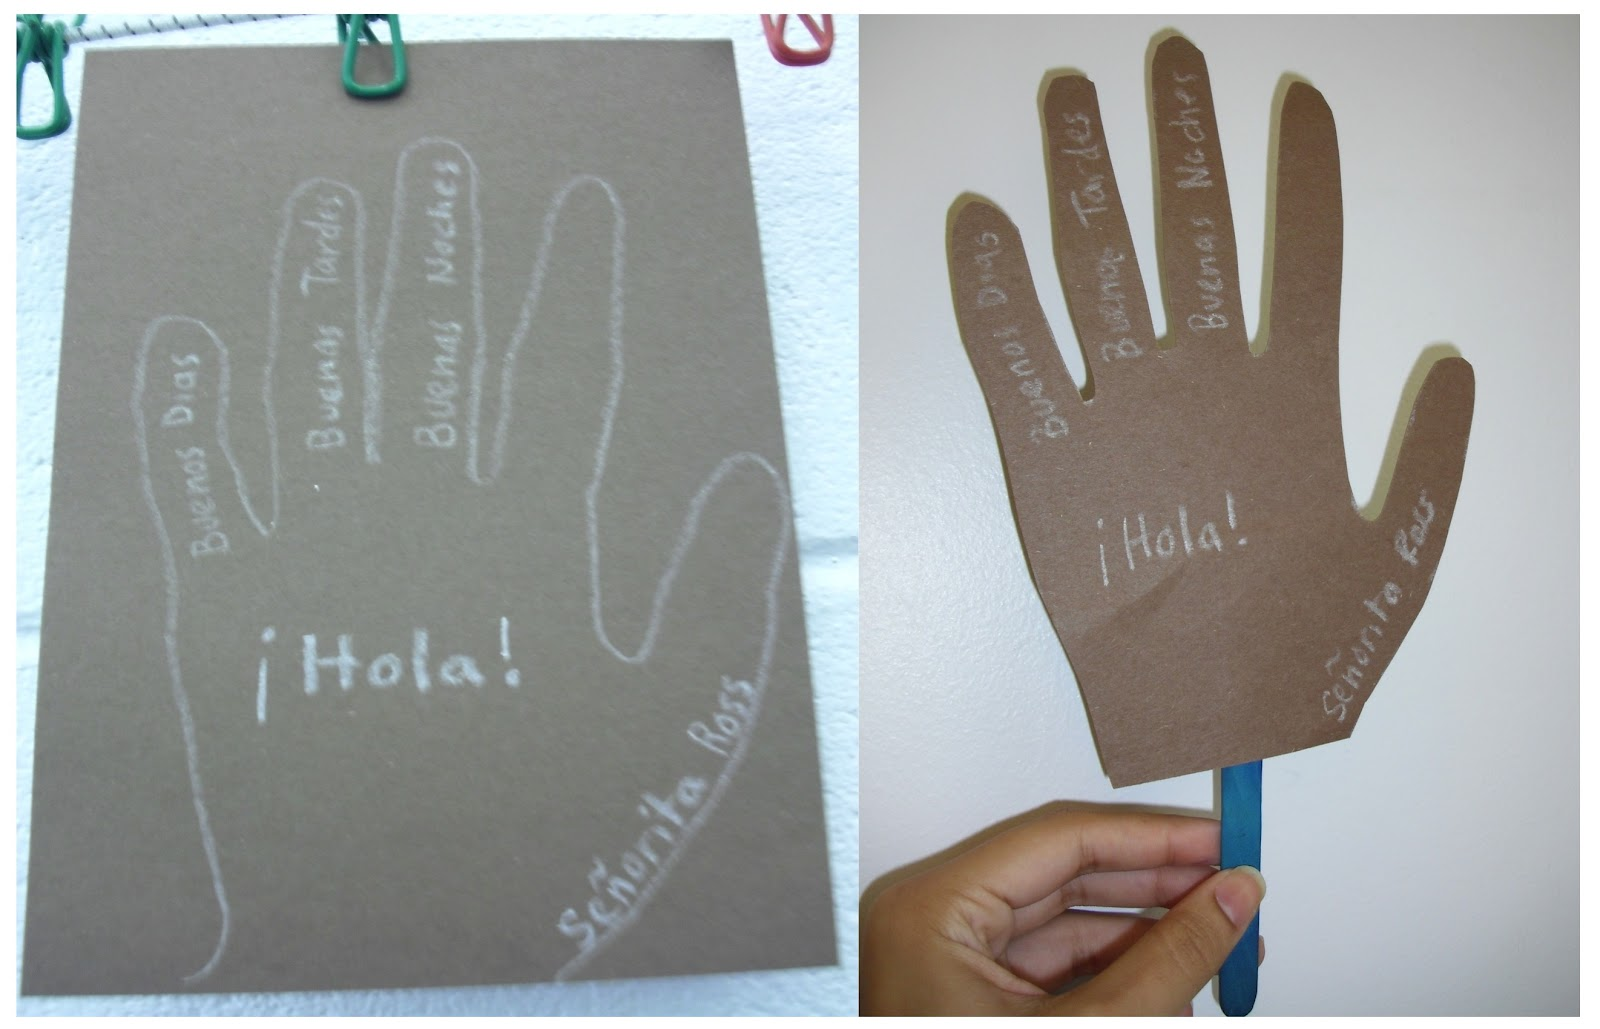 Door decorations for spanish class - Then Students Write The Many Ways Of Saying Hello In Spanish Finally They Cut Out The Hands And Add Sticks